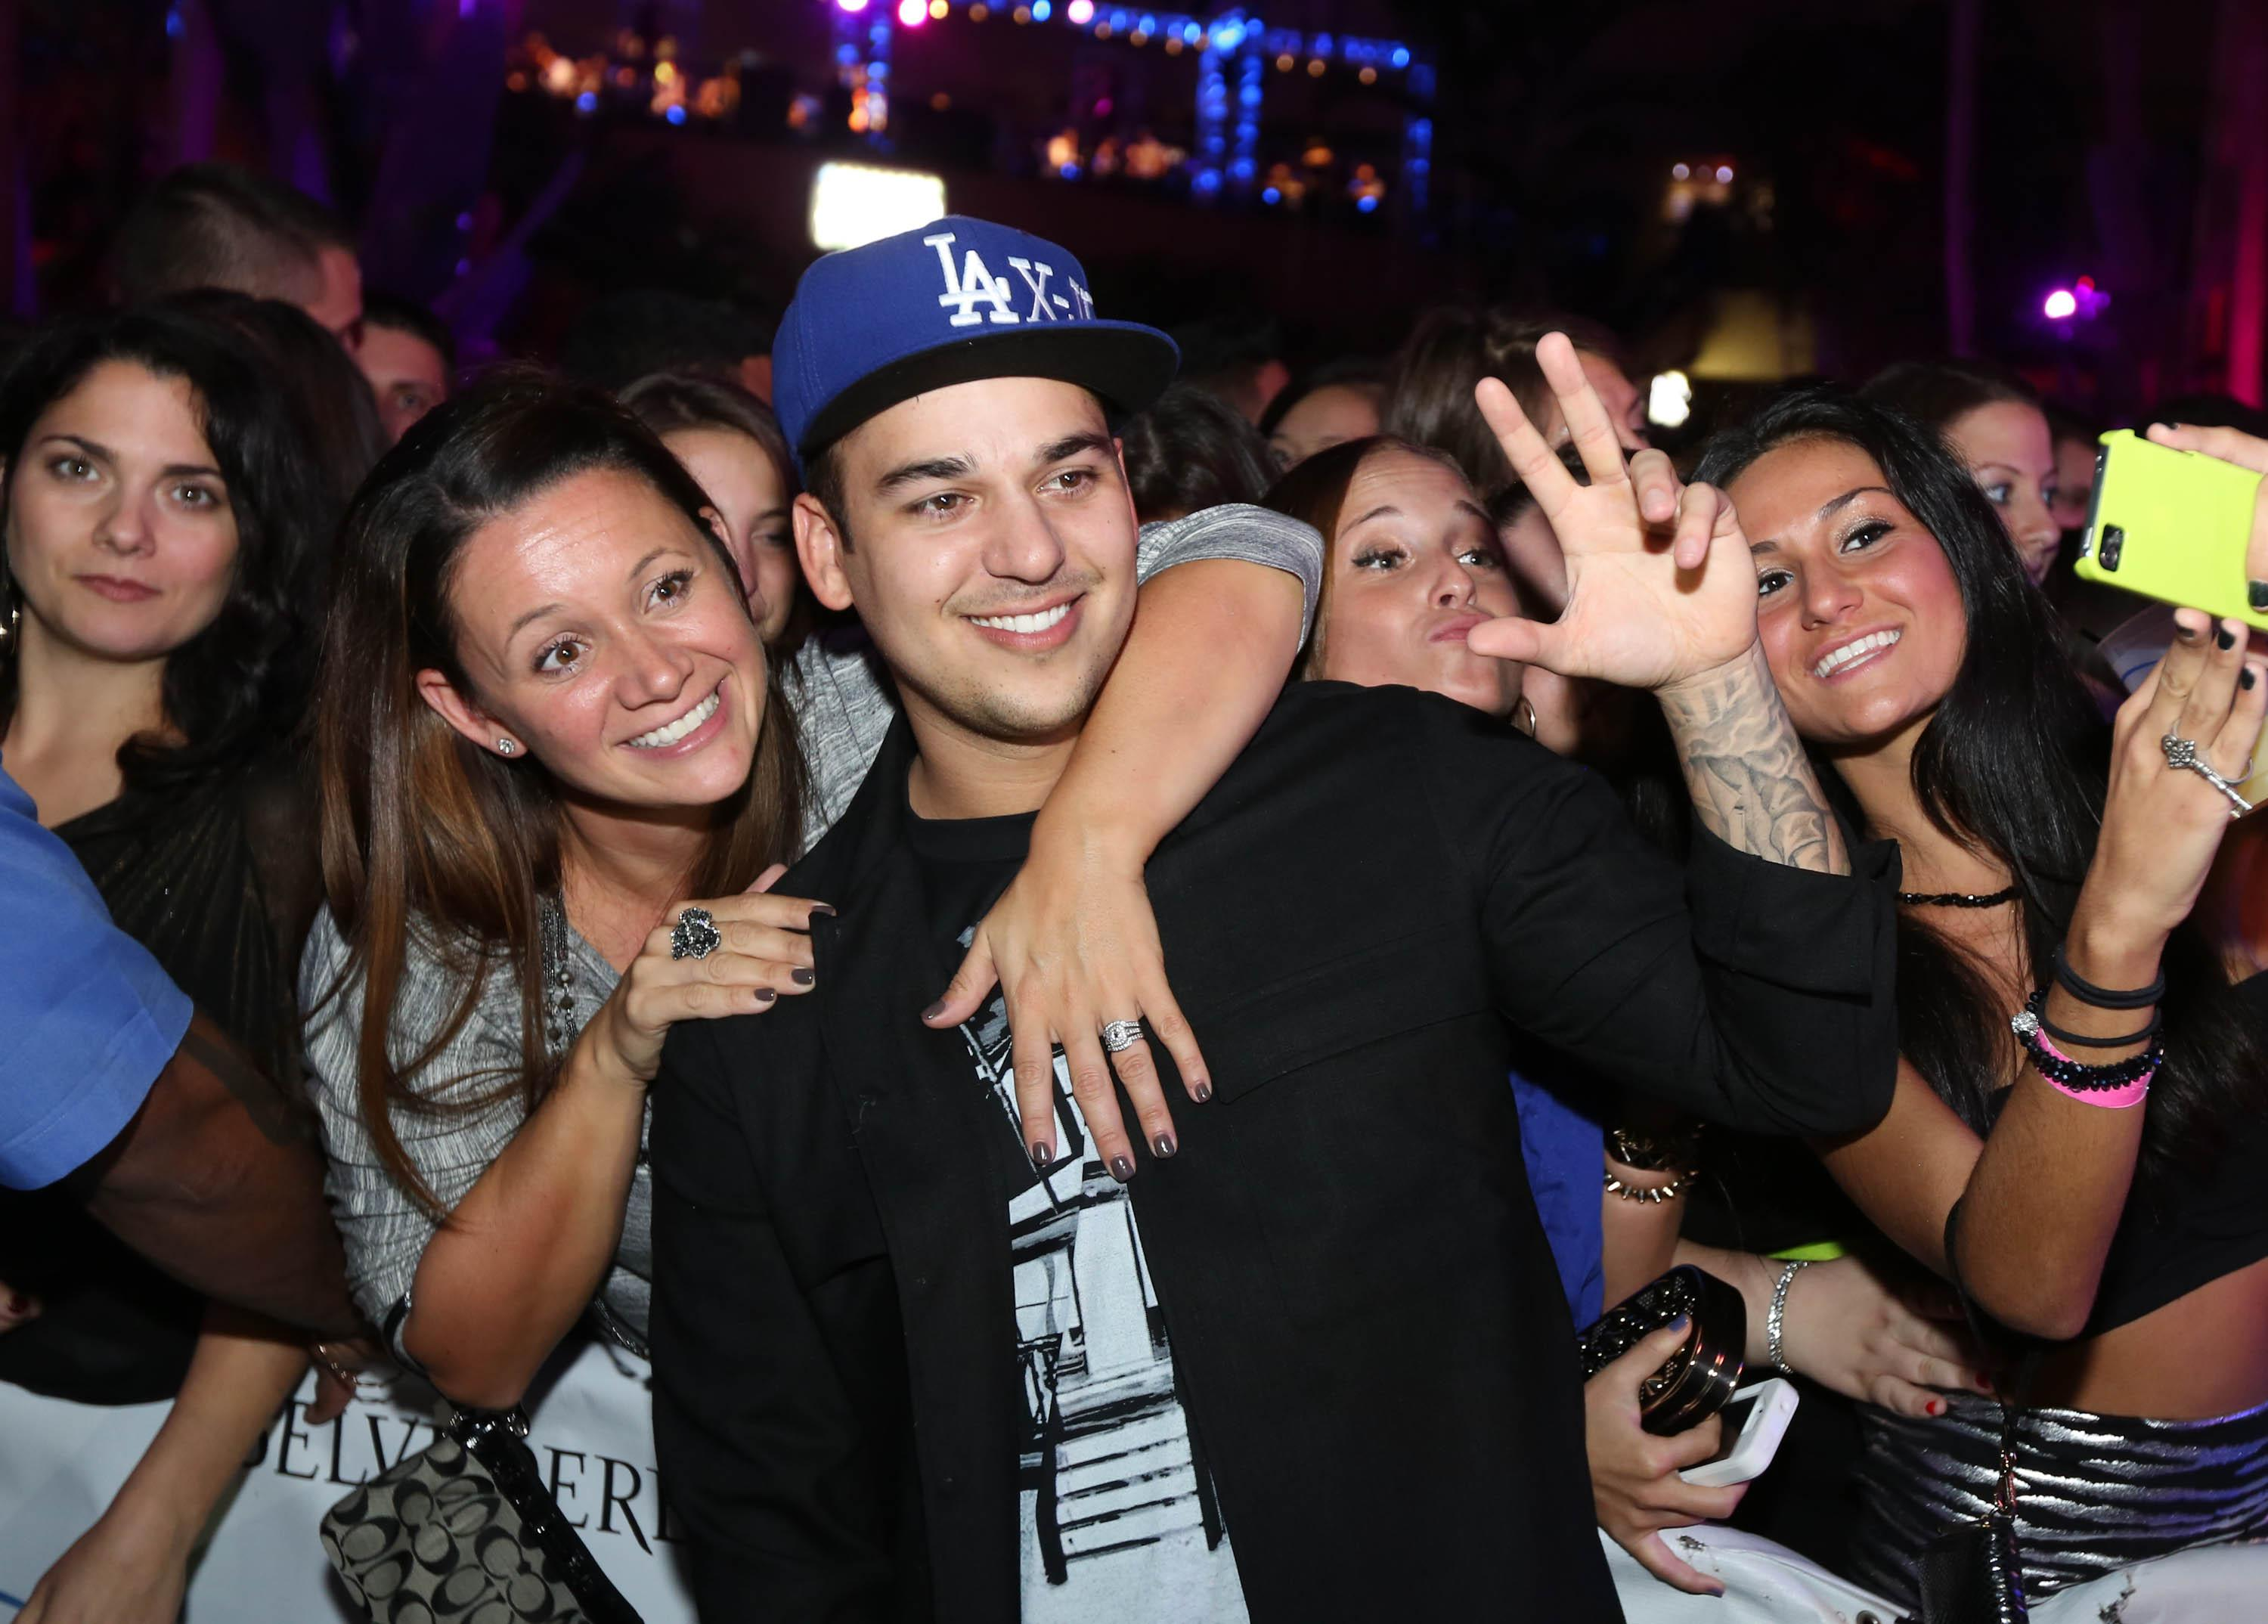 The Pool After Dark Hosted By Brody Jenner And Rob Kardashian